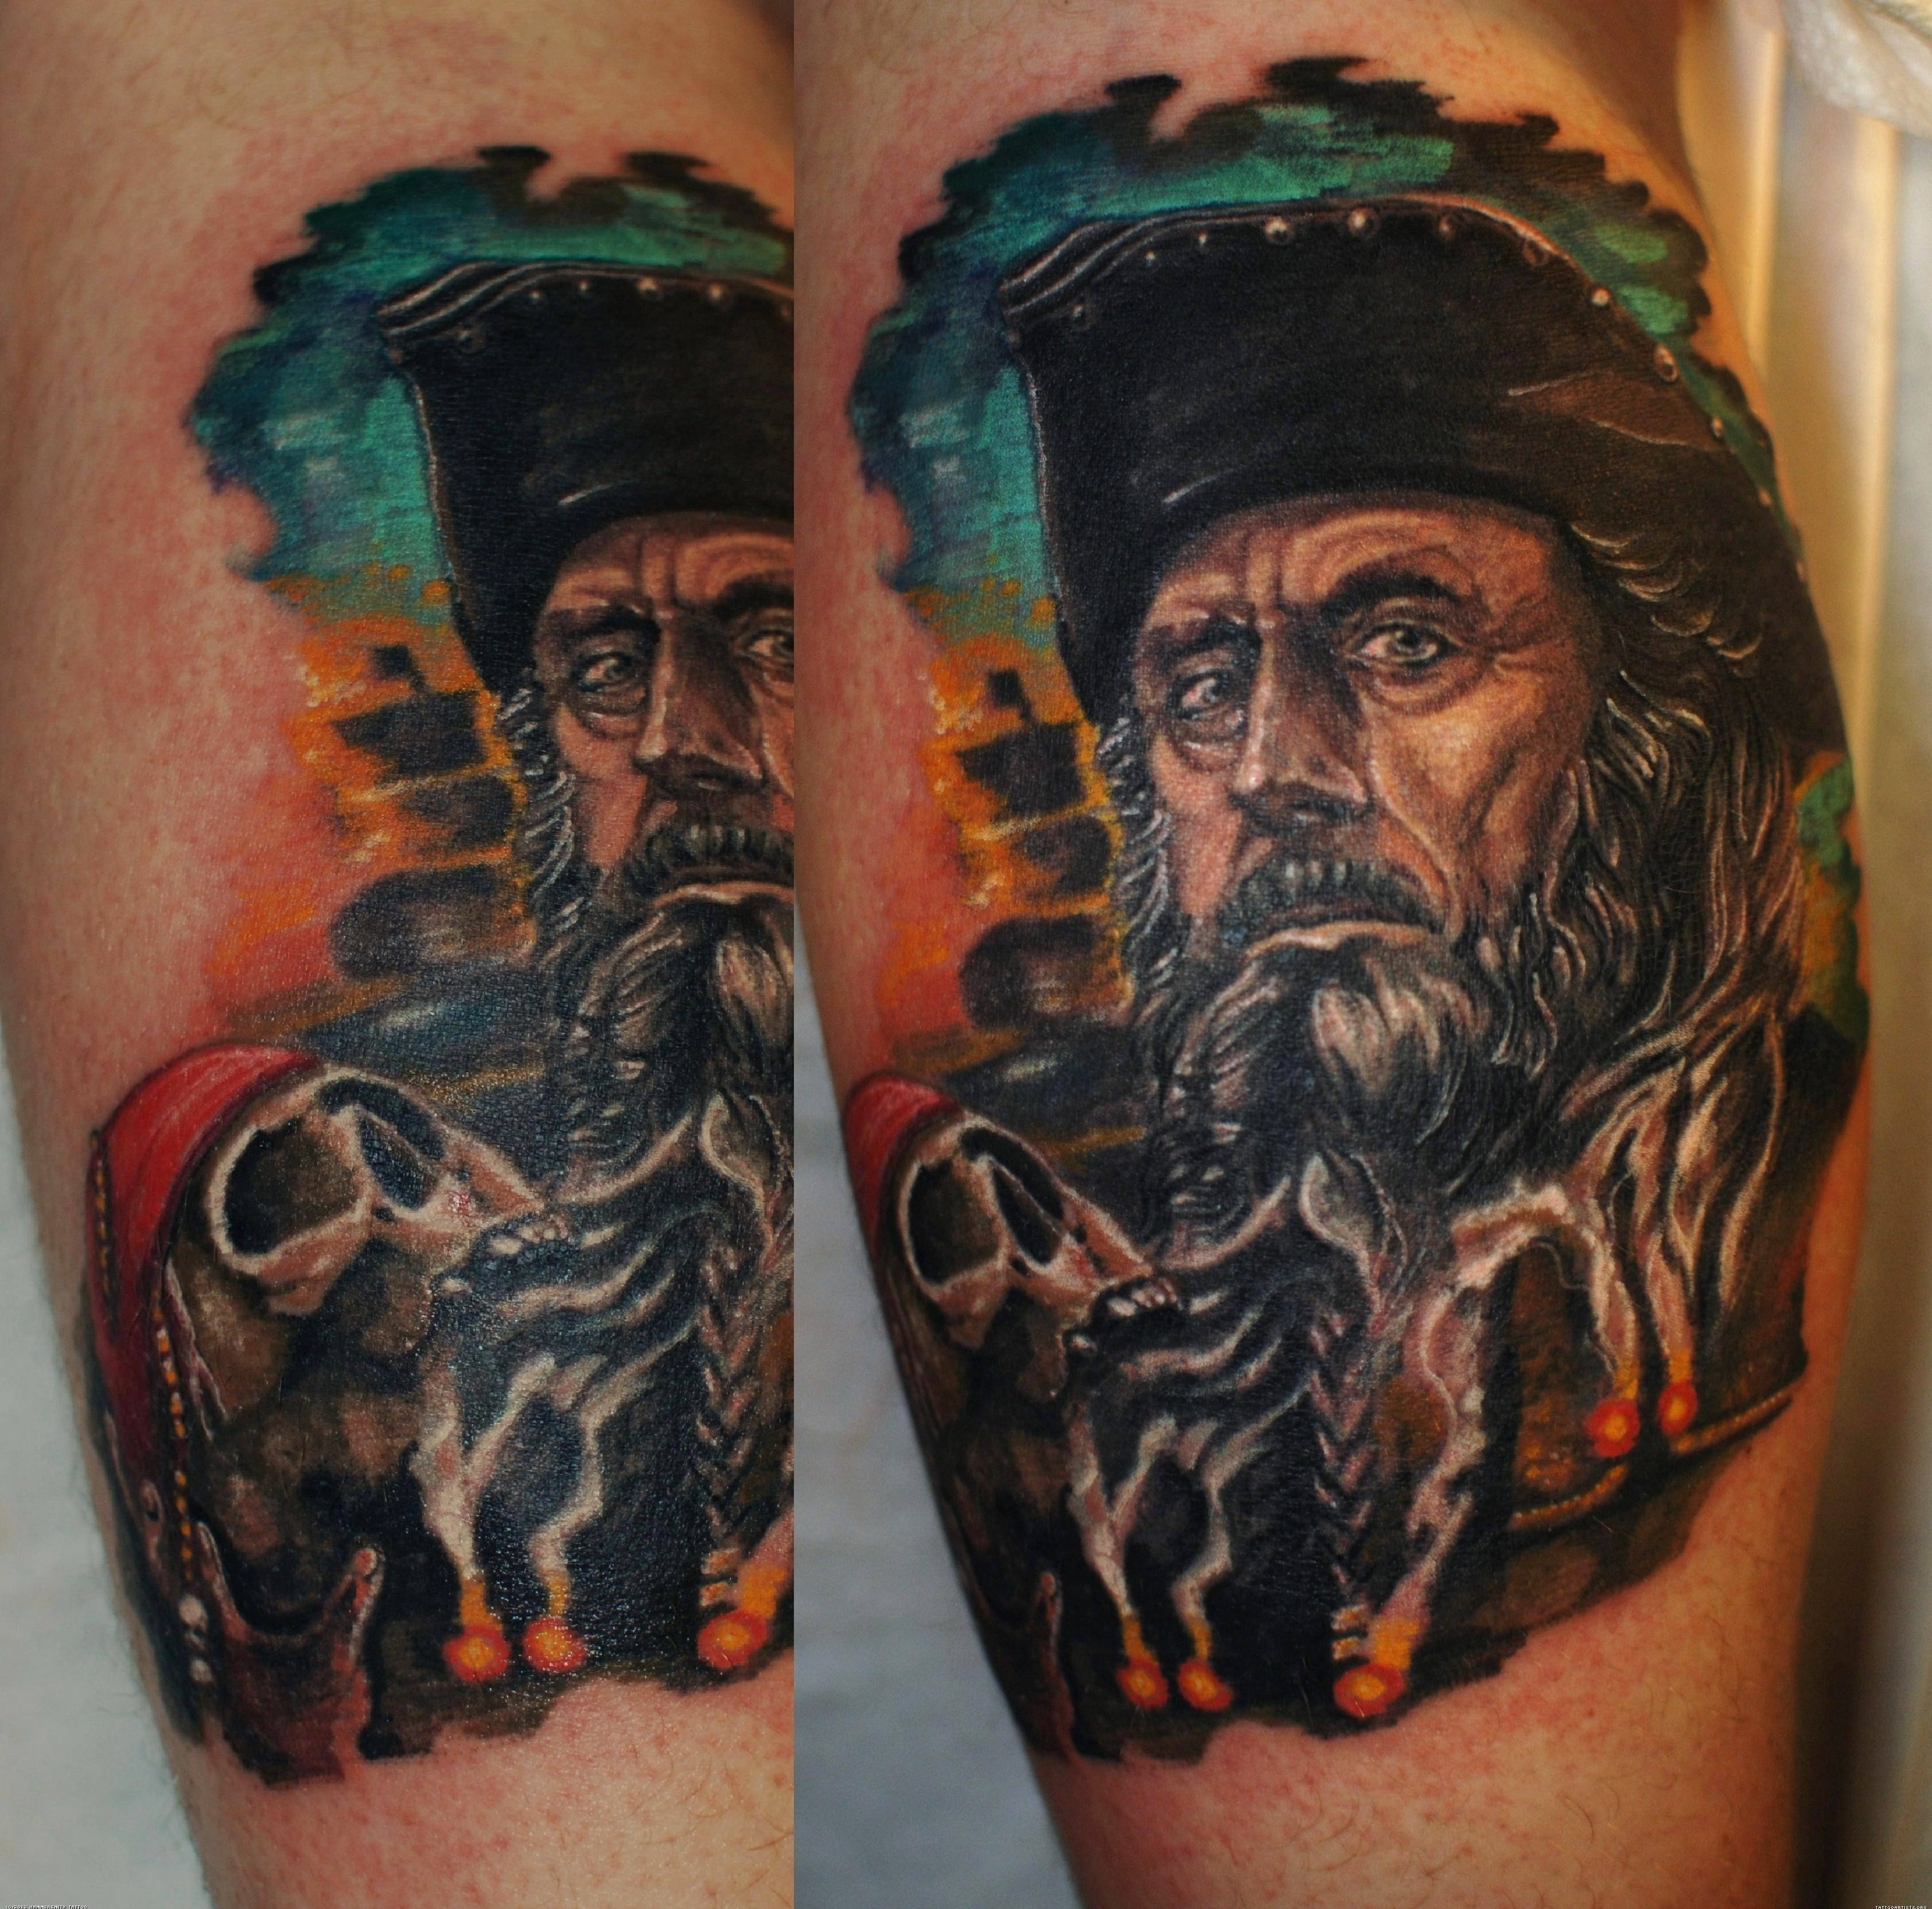 Blackbeard pirate ship tattoo - photo#18